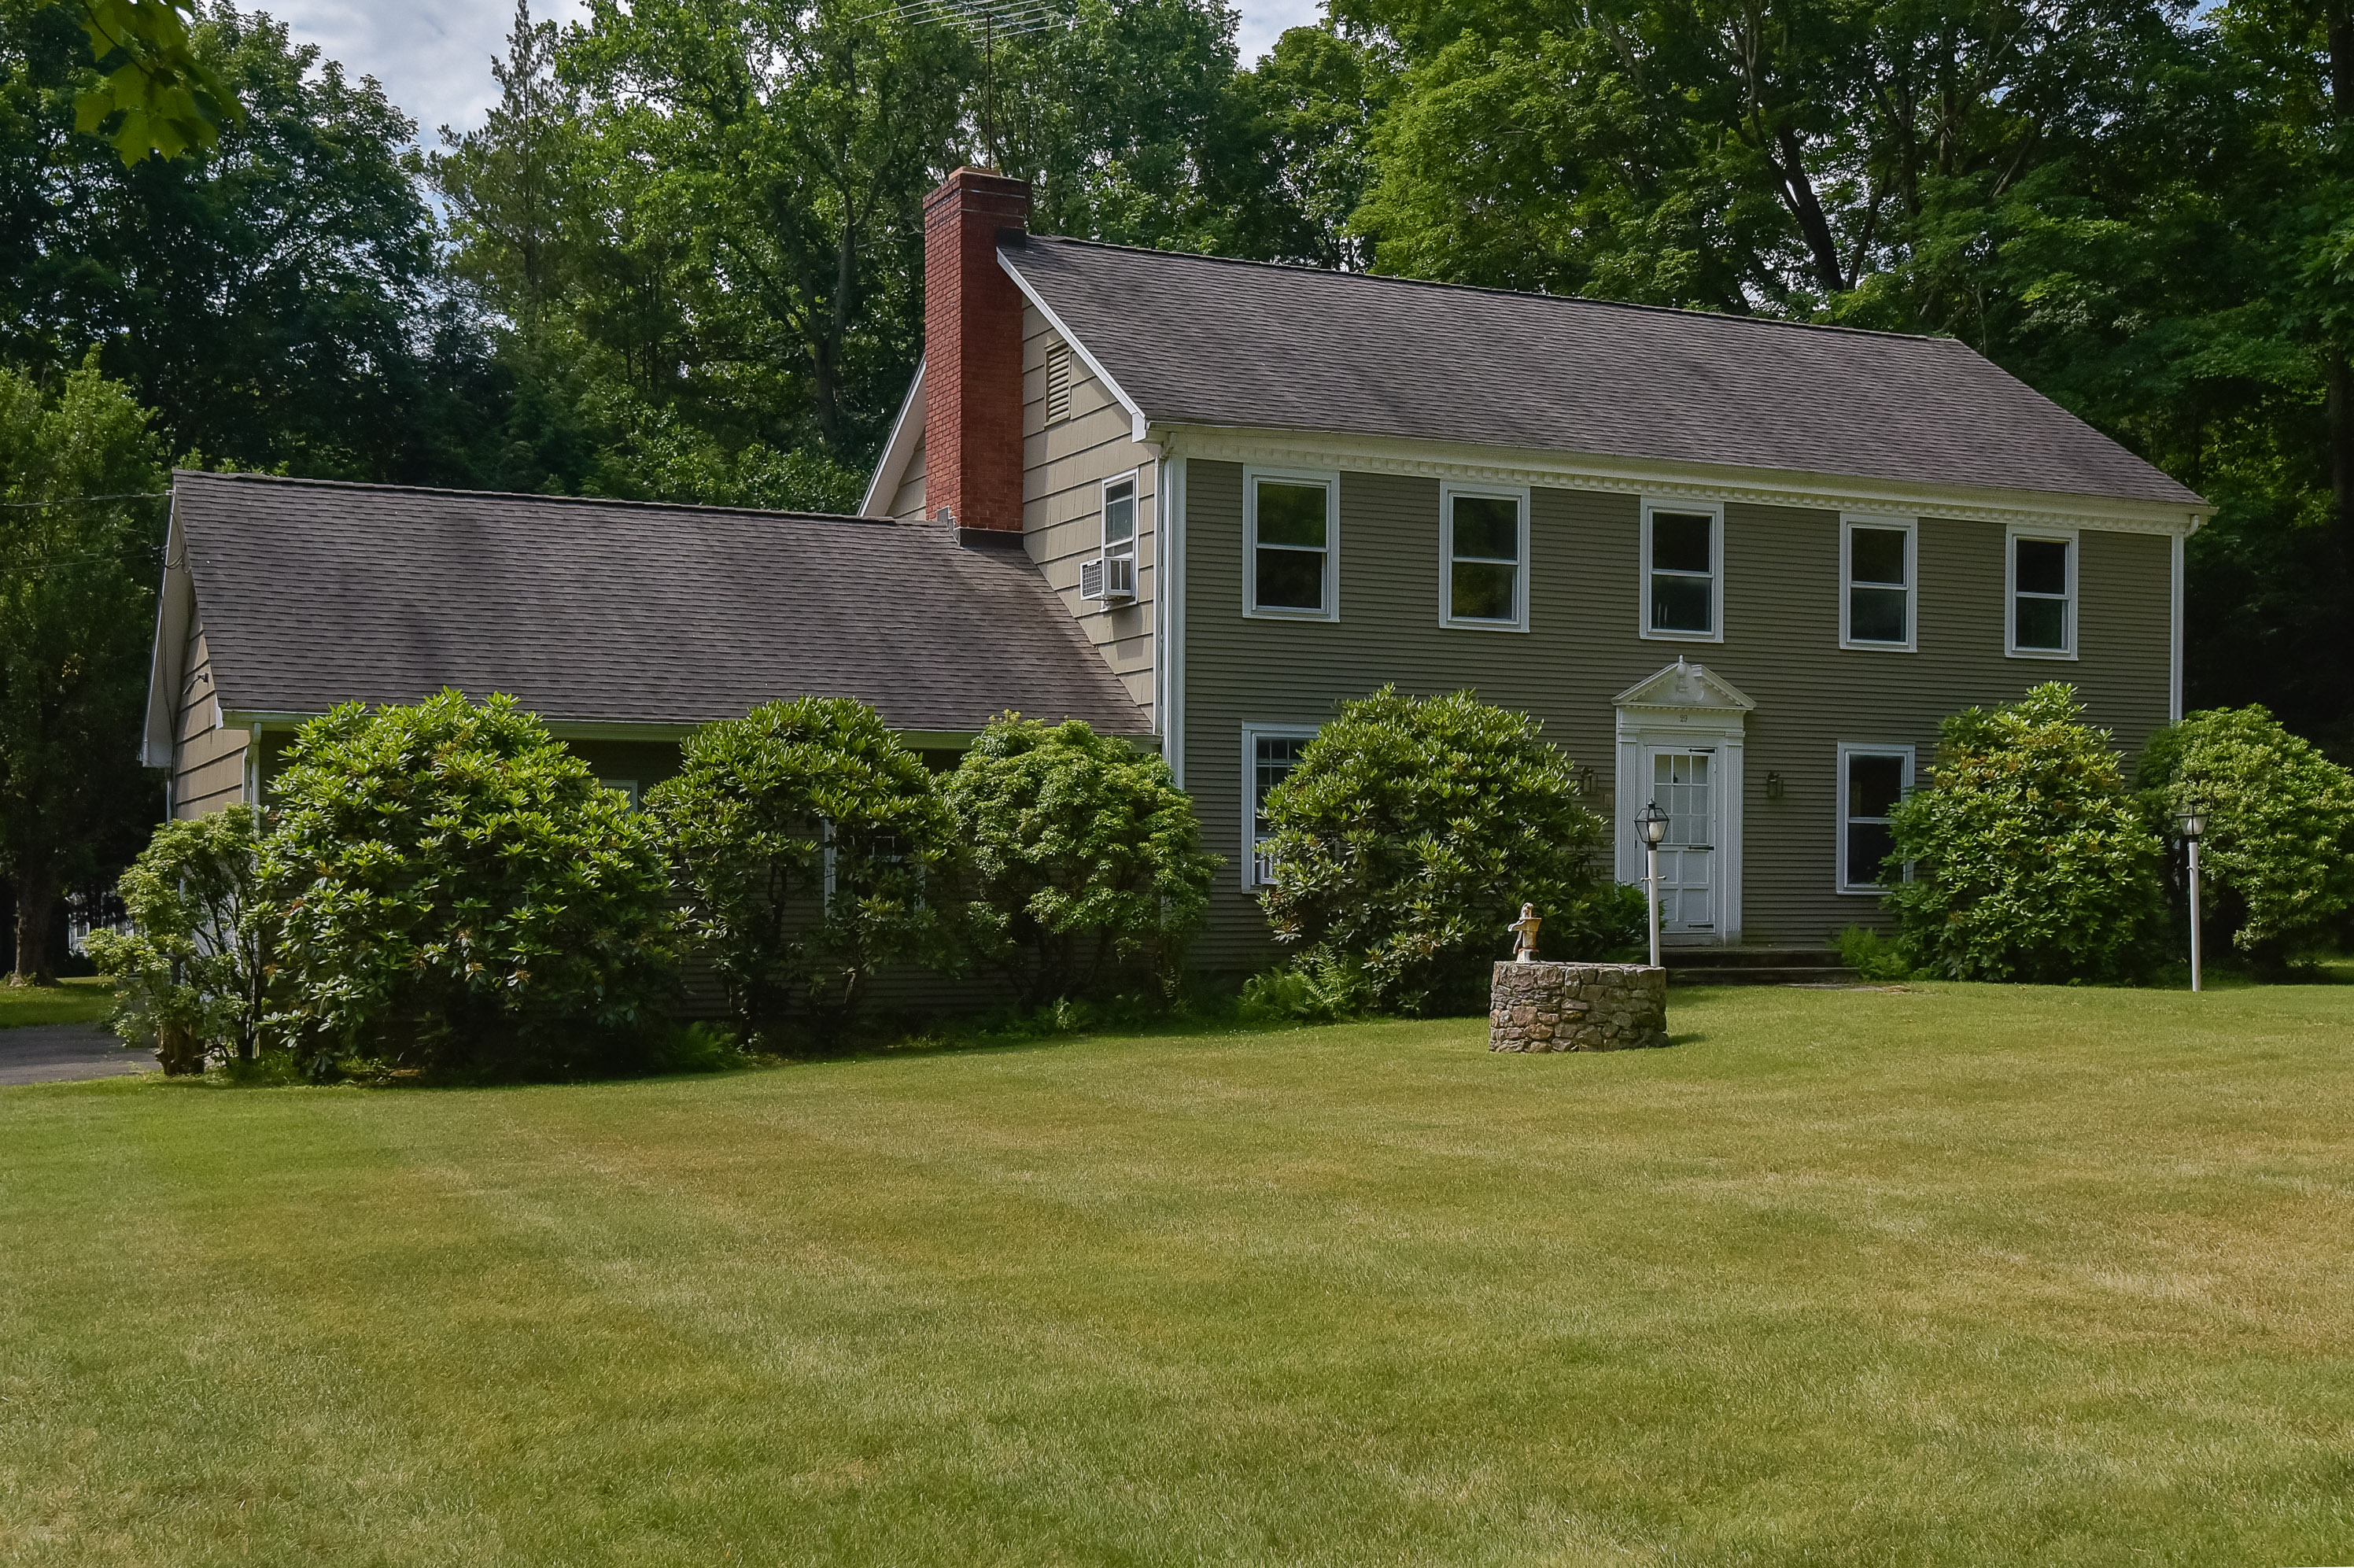 Single Family Home for Sale at North Stamford Colonial 29 Middle Ridge Road Stamford, Connecticut, 06903 United States